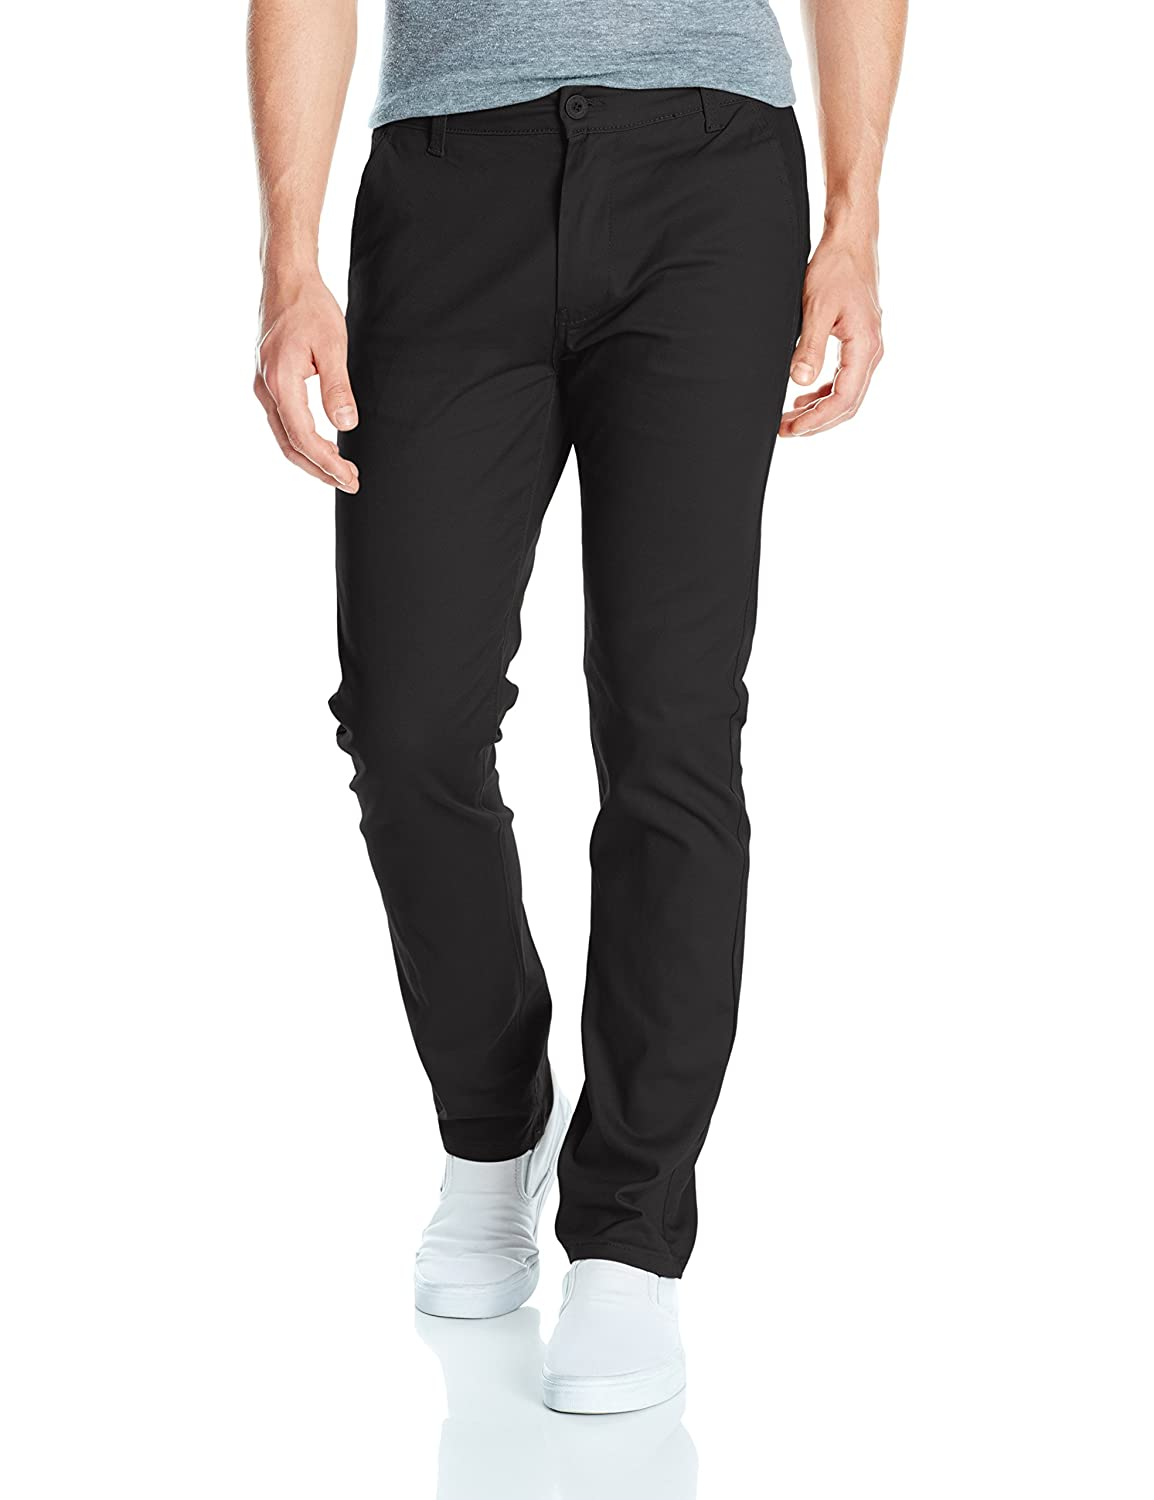 Southpole Men's Flex Stretch Basic Long Chino Pants, Black(New), 34X32